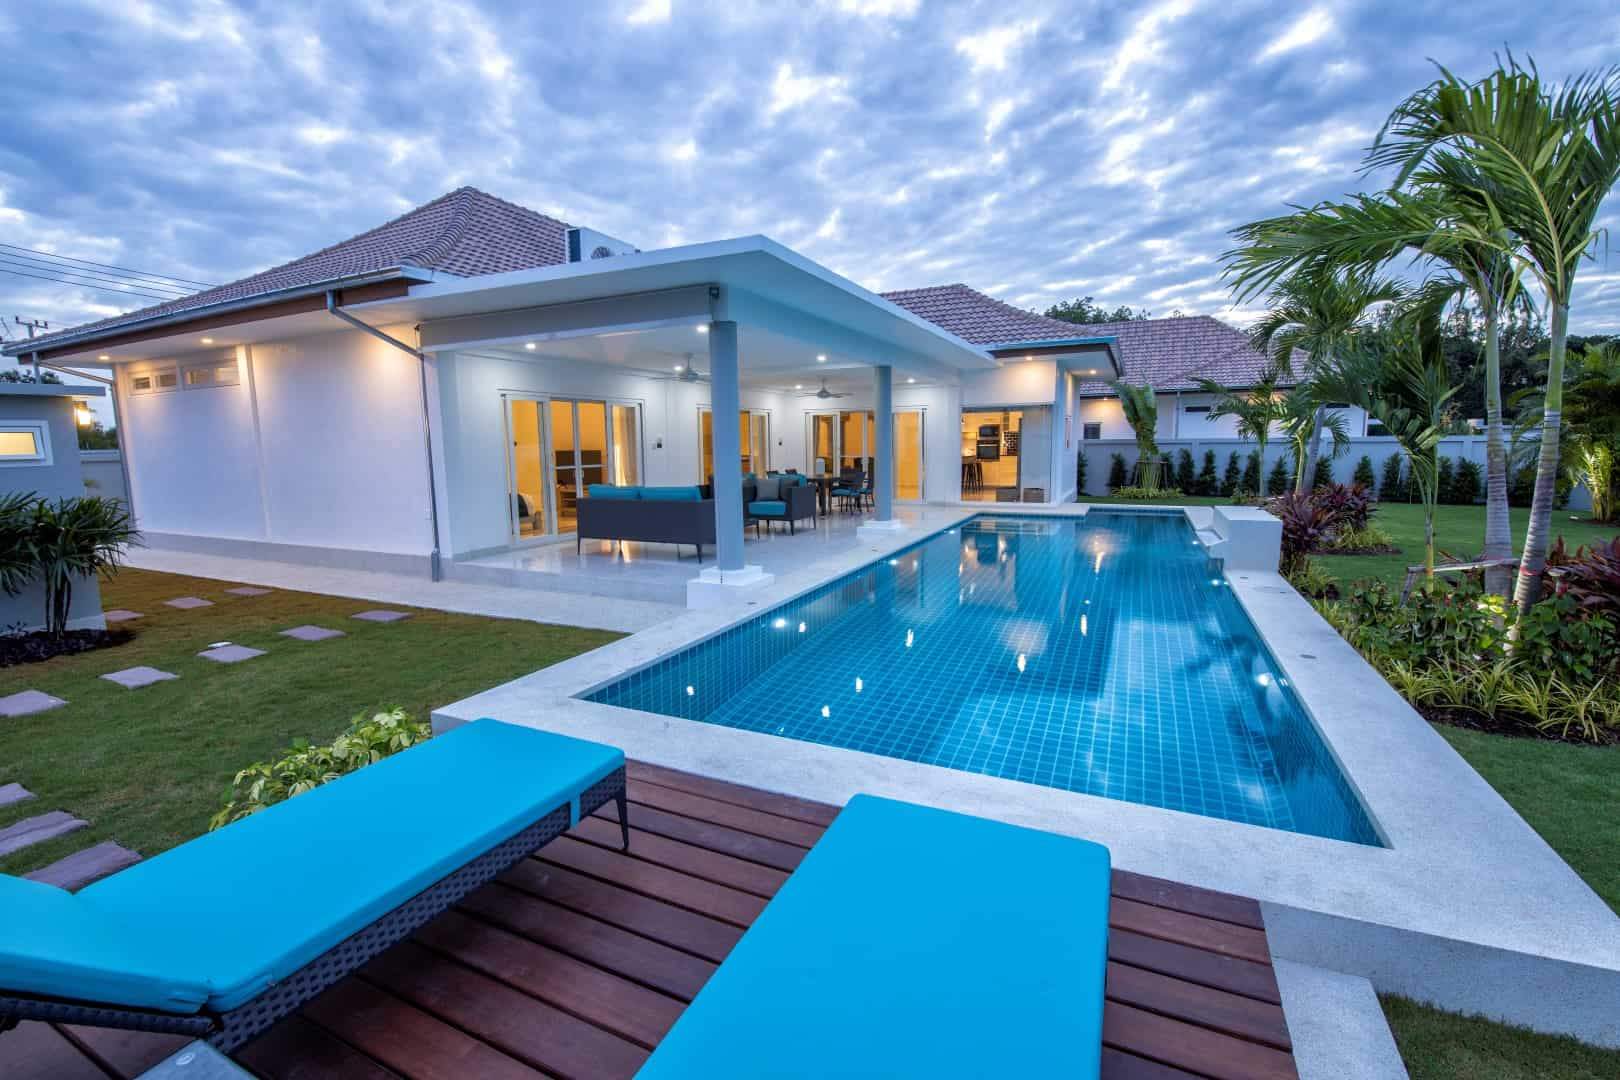 Mali Signature by Orchid Palm Homes, Hua Hin, Thailand – Update March 2020